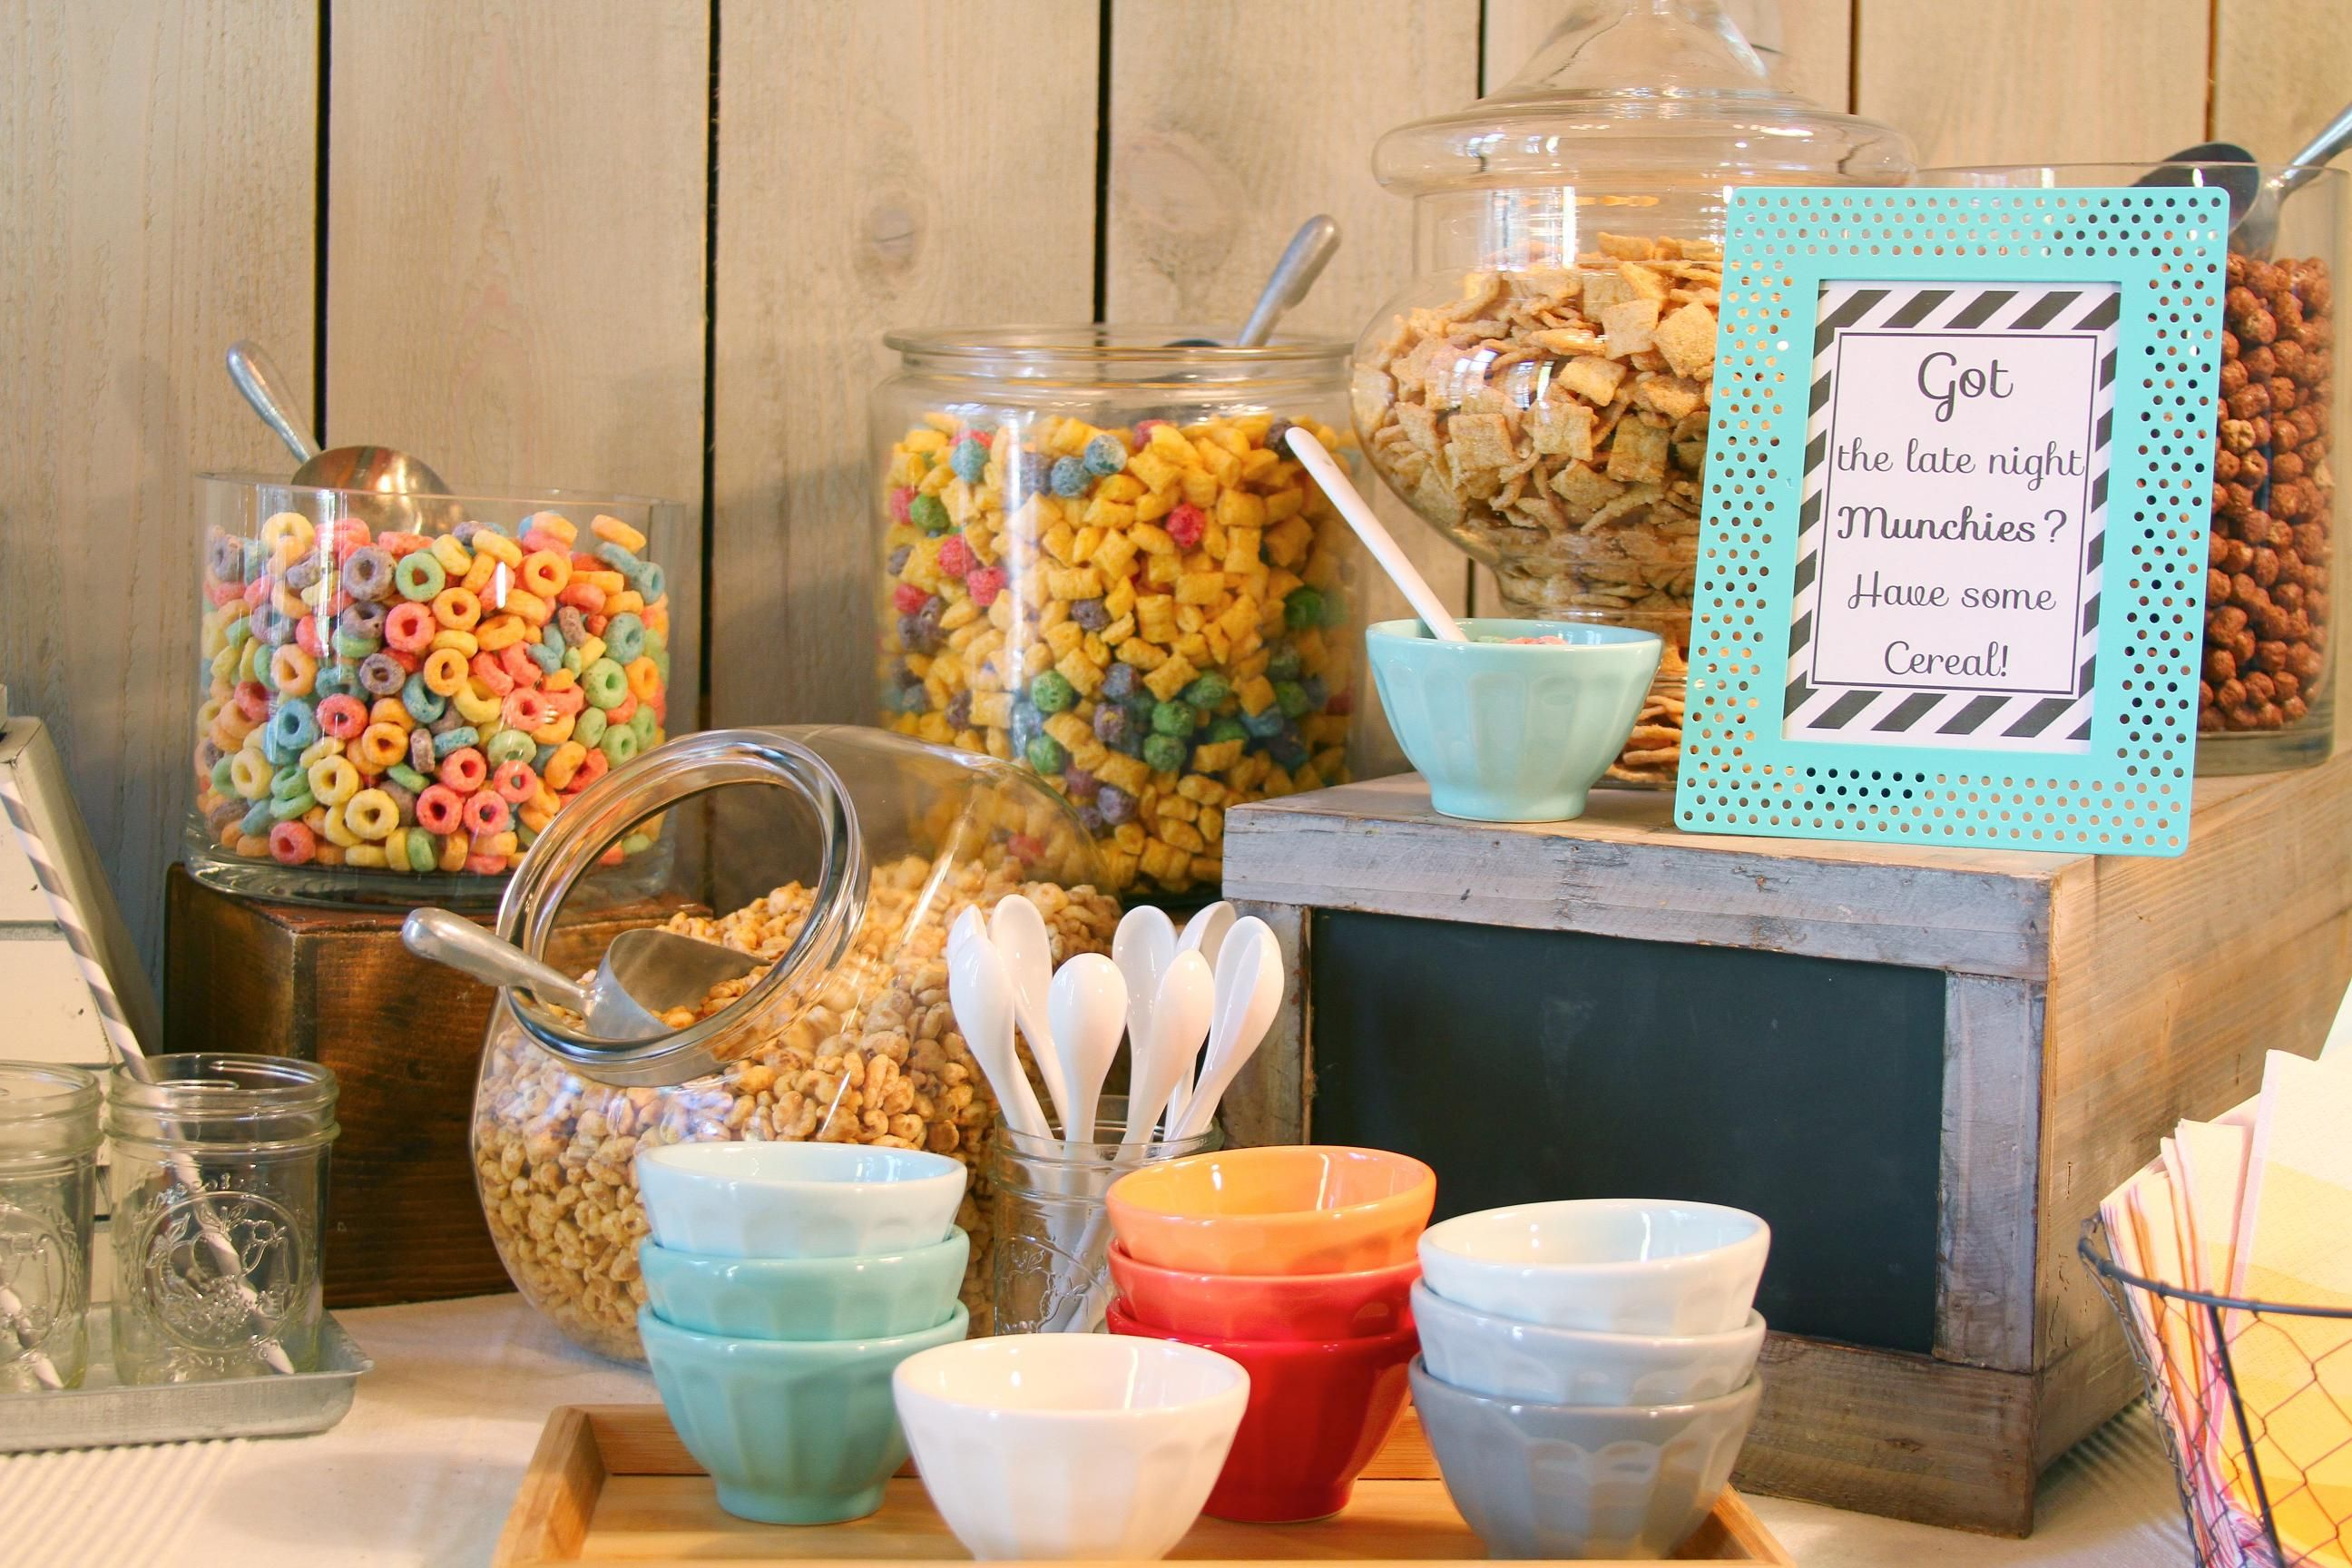 Late Night Snack - Cereal Station!